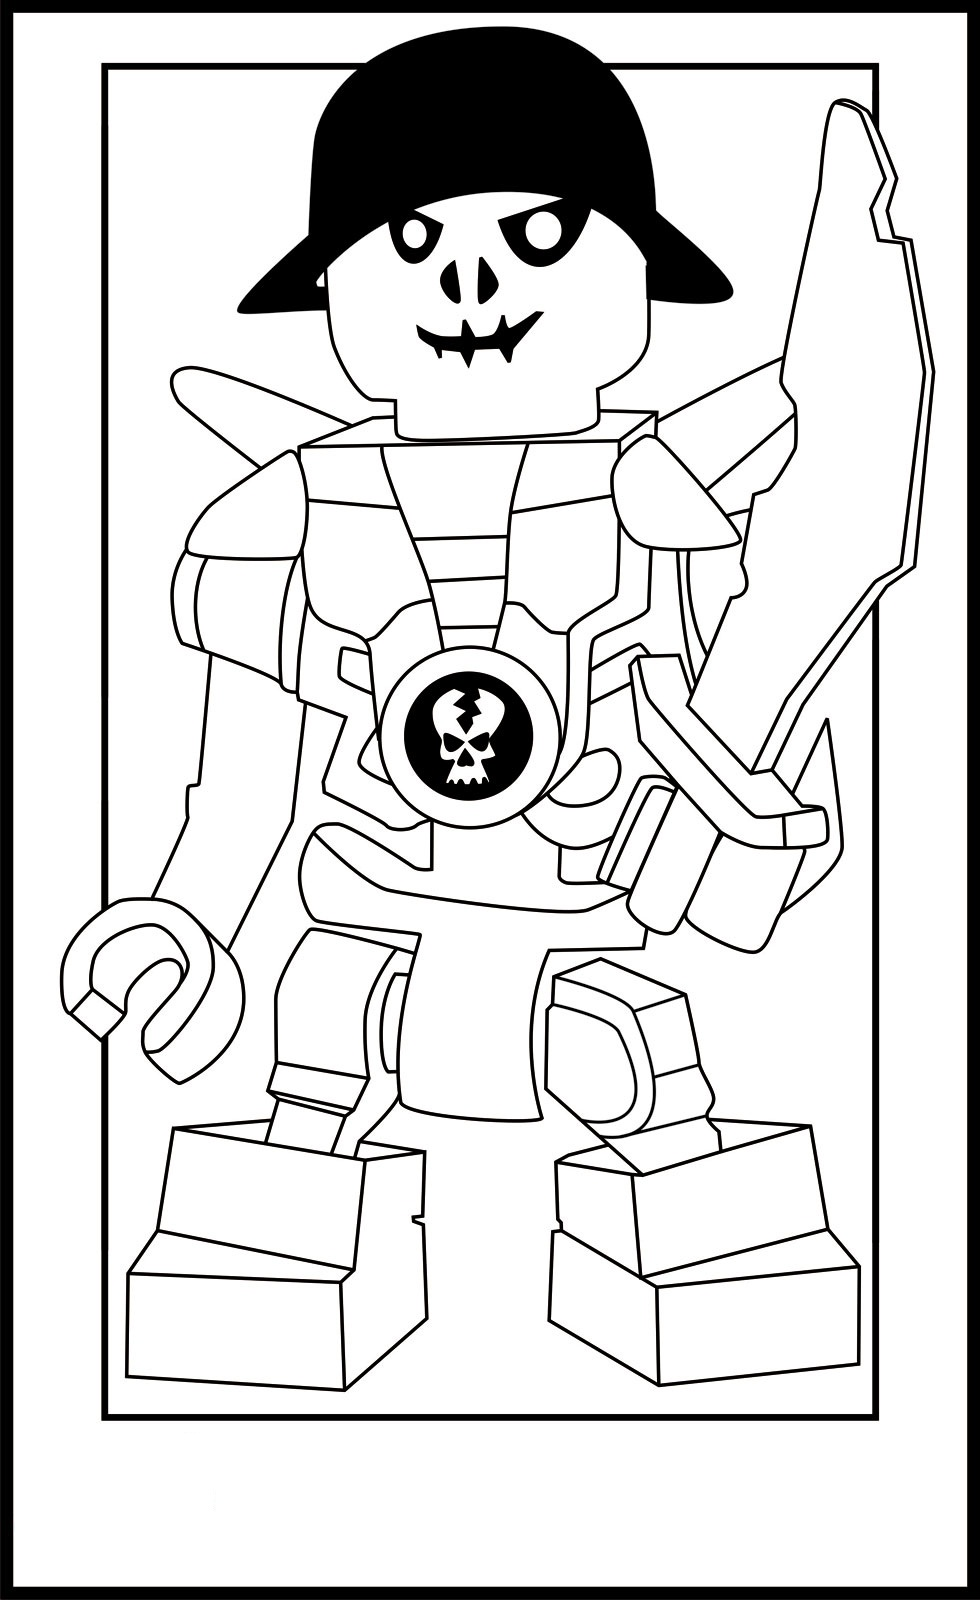 Shimmer Shine Coloring Pages together with Boy Coloring Pages moreover Pokemon Coloring Pages further Free Printable Preschool Coloring Pages likewise Snail Animal Coloring Pages Printable Kaleidoscope Coloring Pages For Kids View Larger Coloring Pages For Adults Printable. on free printable flowers to color